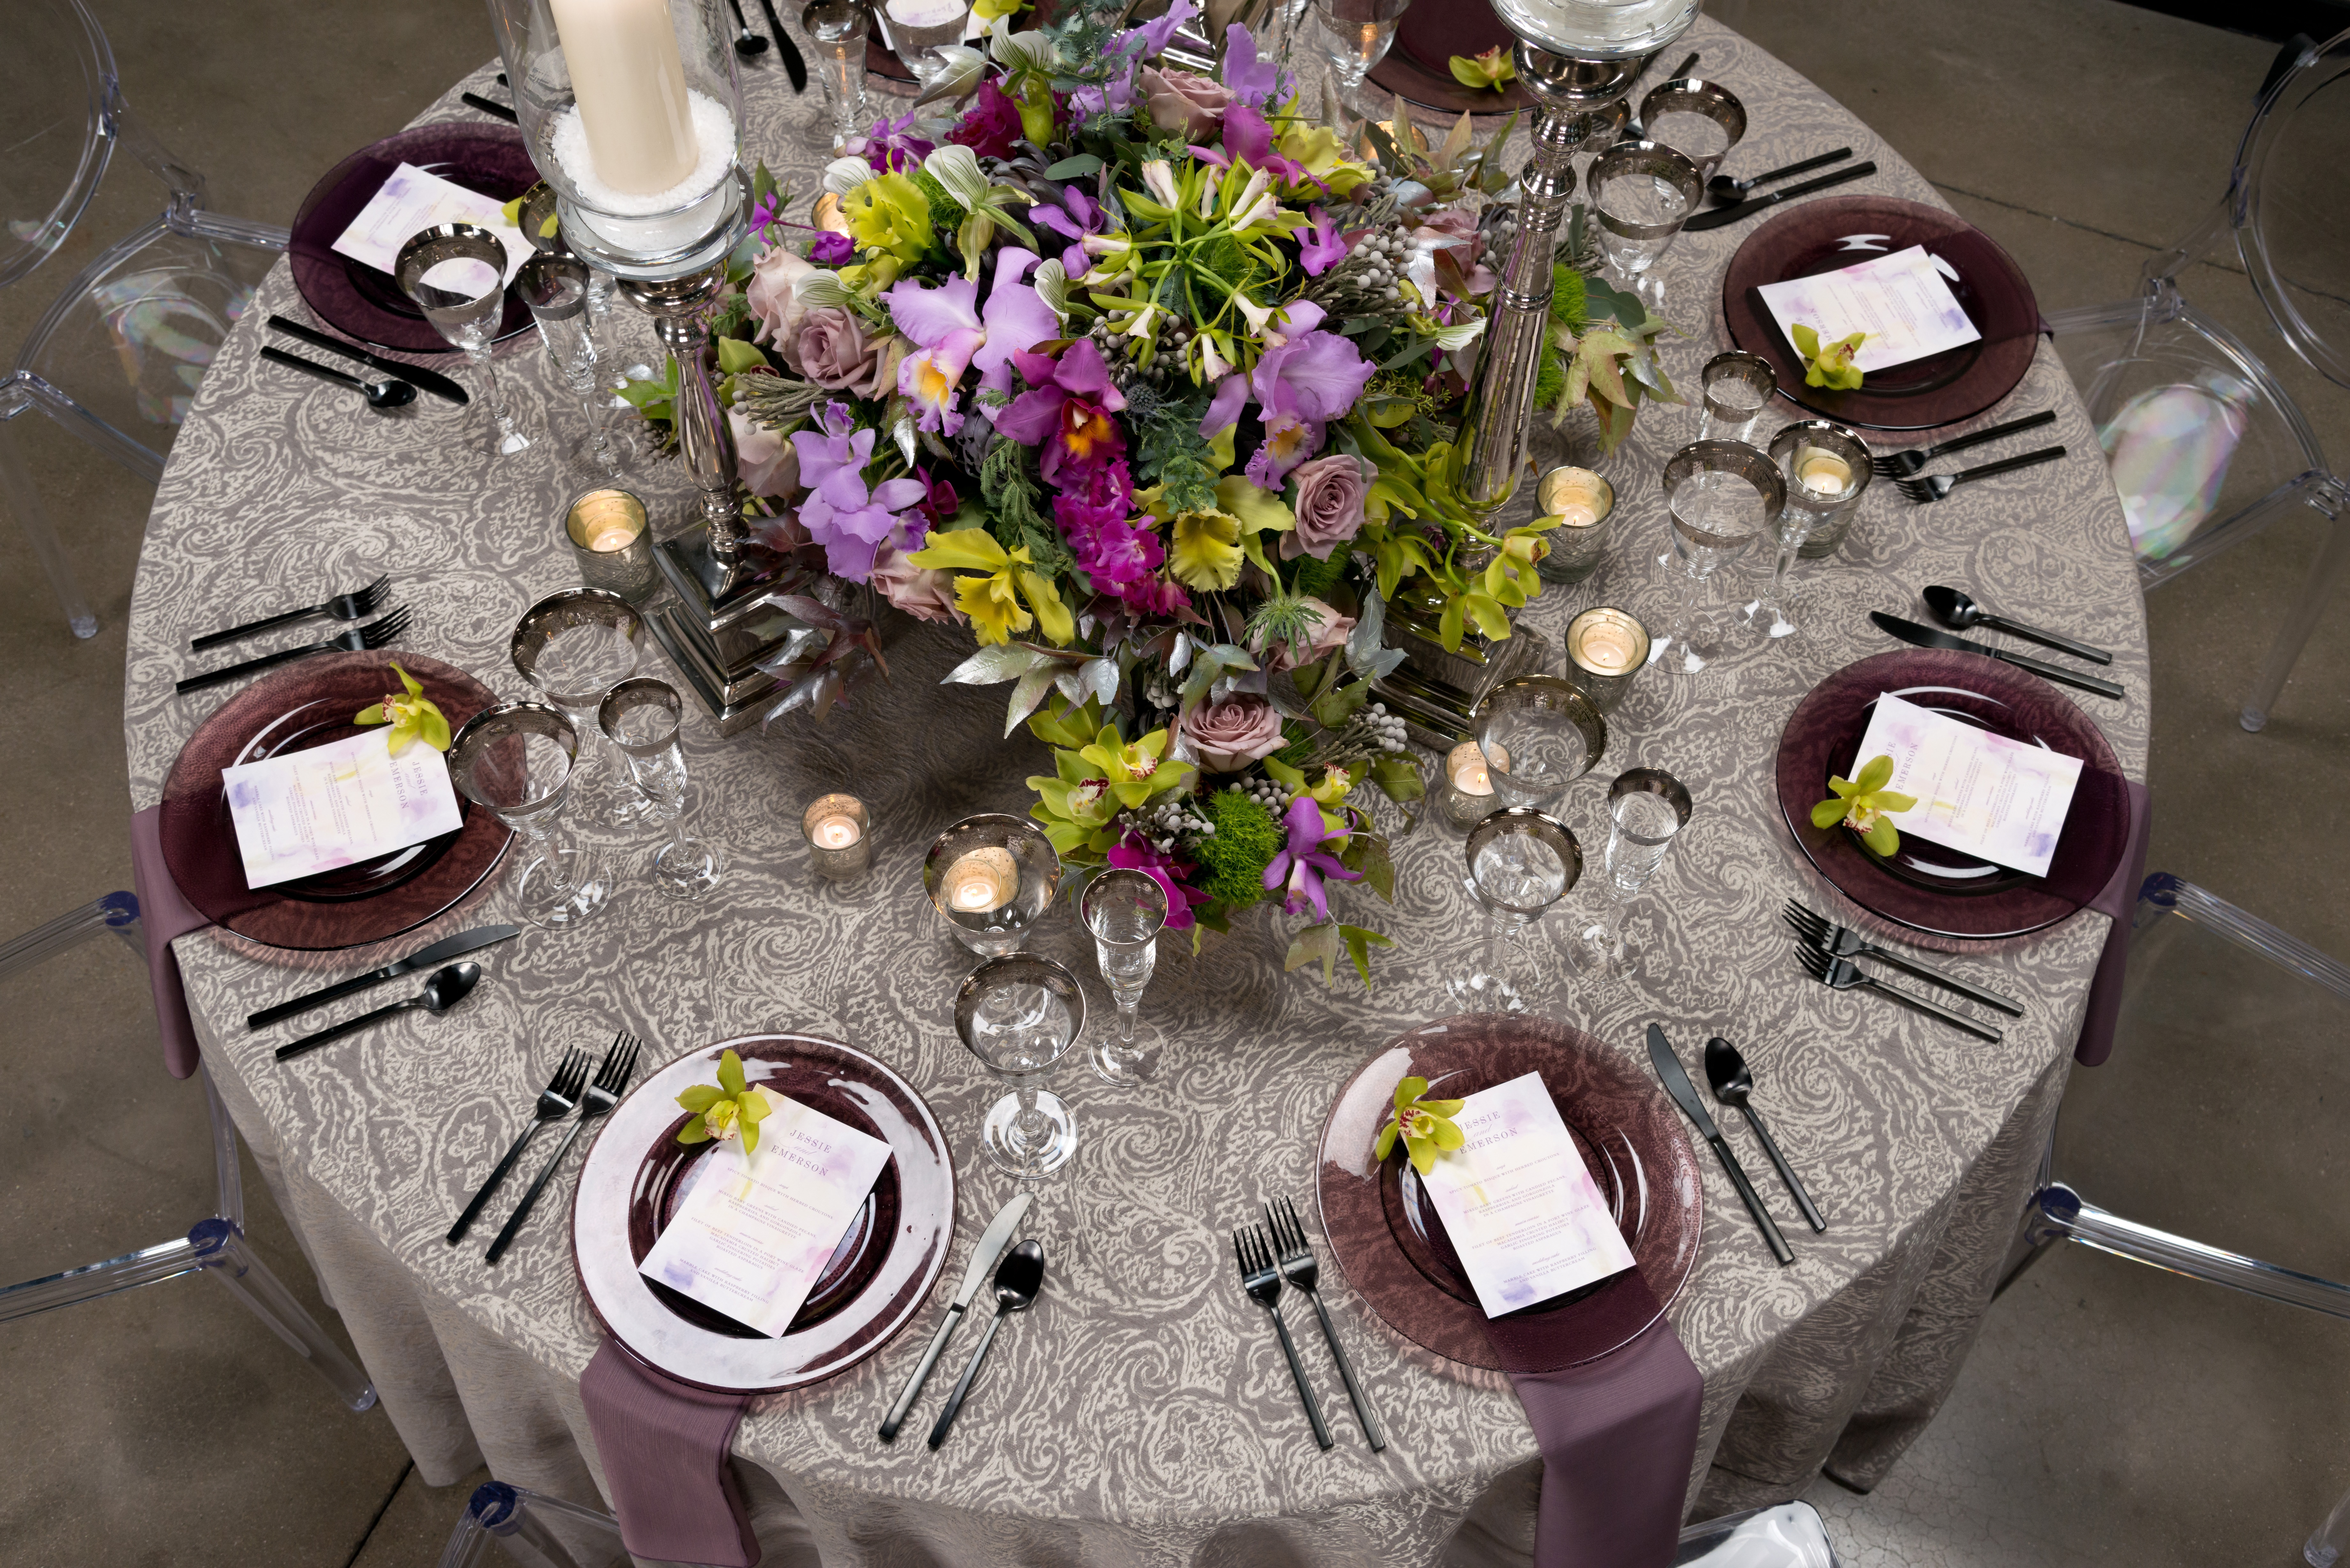 BBJ Linen Everlast Kehoe Collection - Prado Tablescape 2